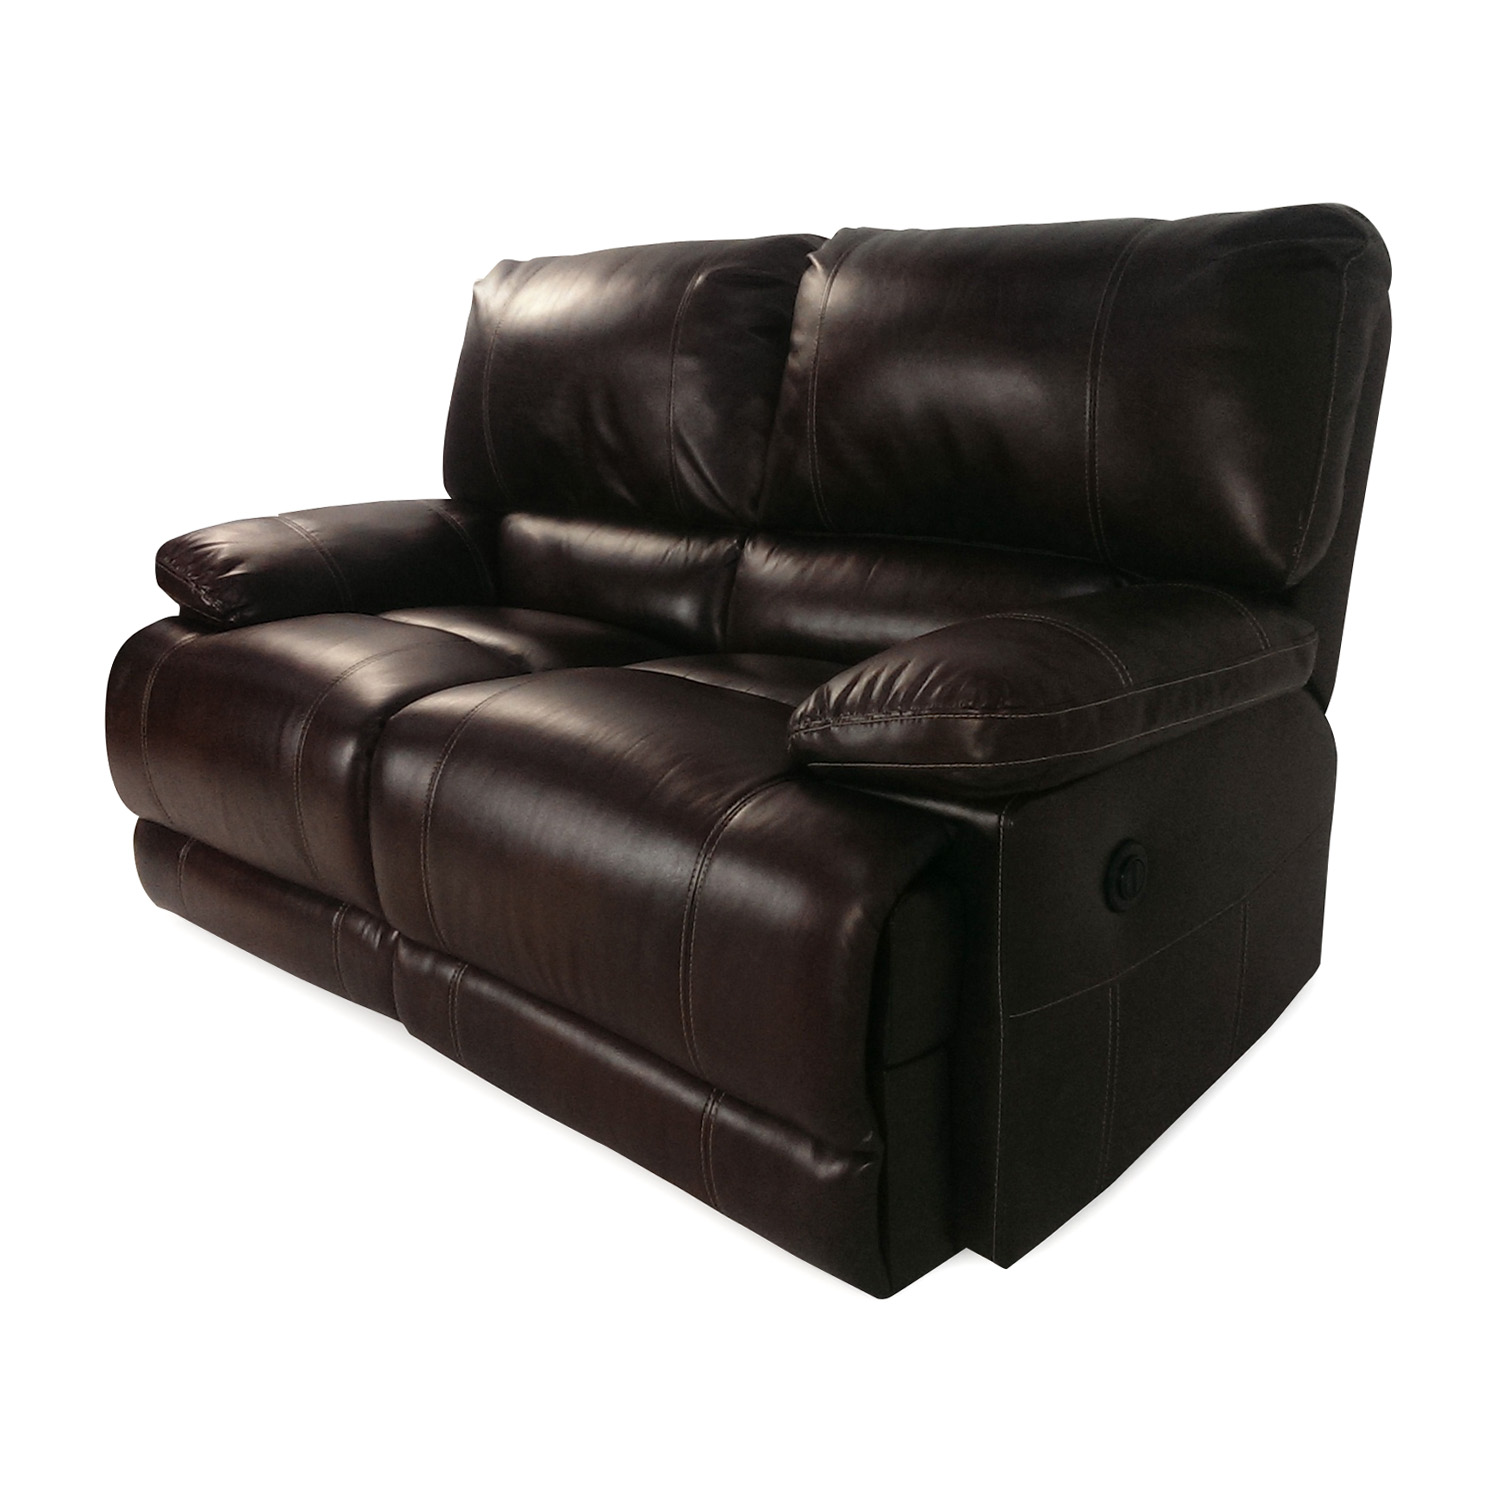 50 off bobs furniture bobs furniture reclining loveseat for Bobs used furniture